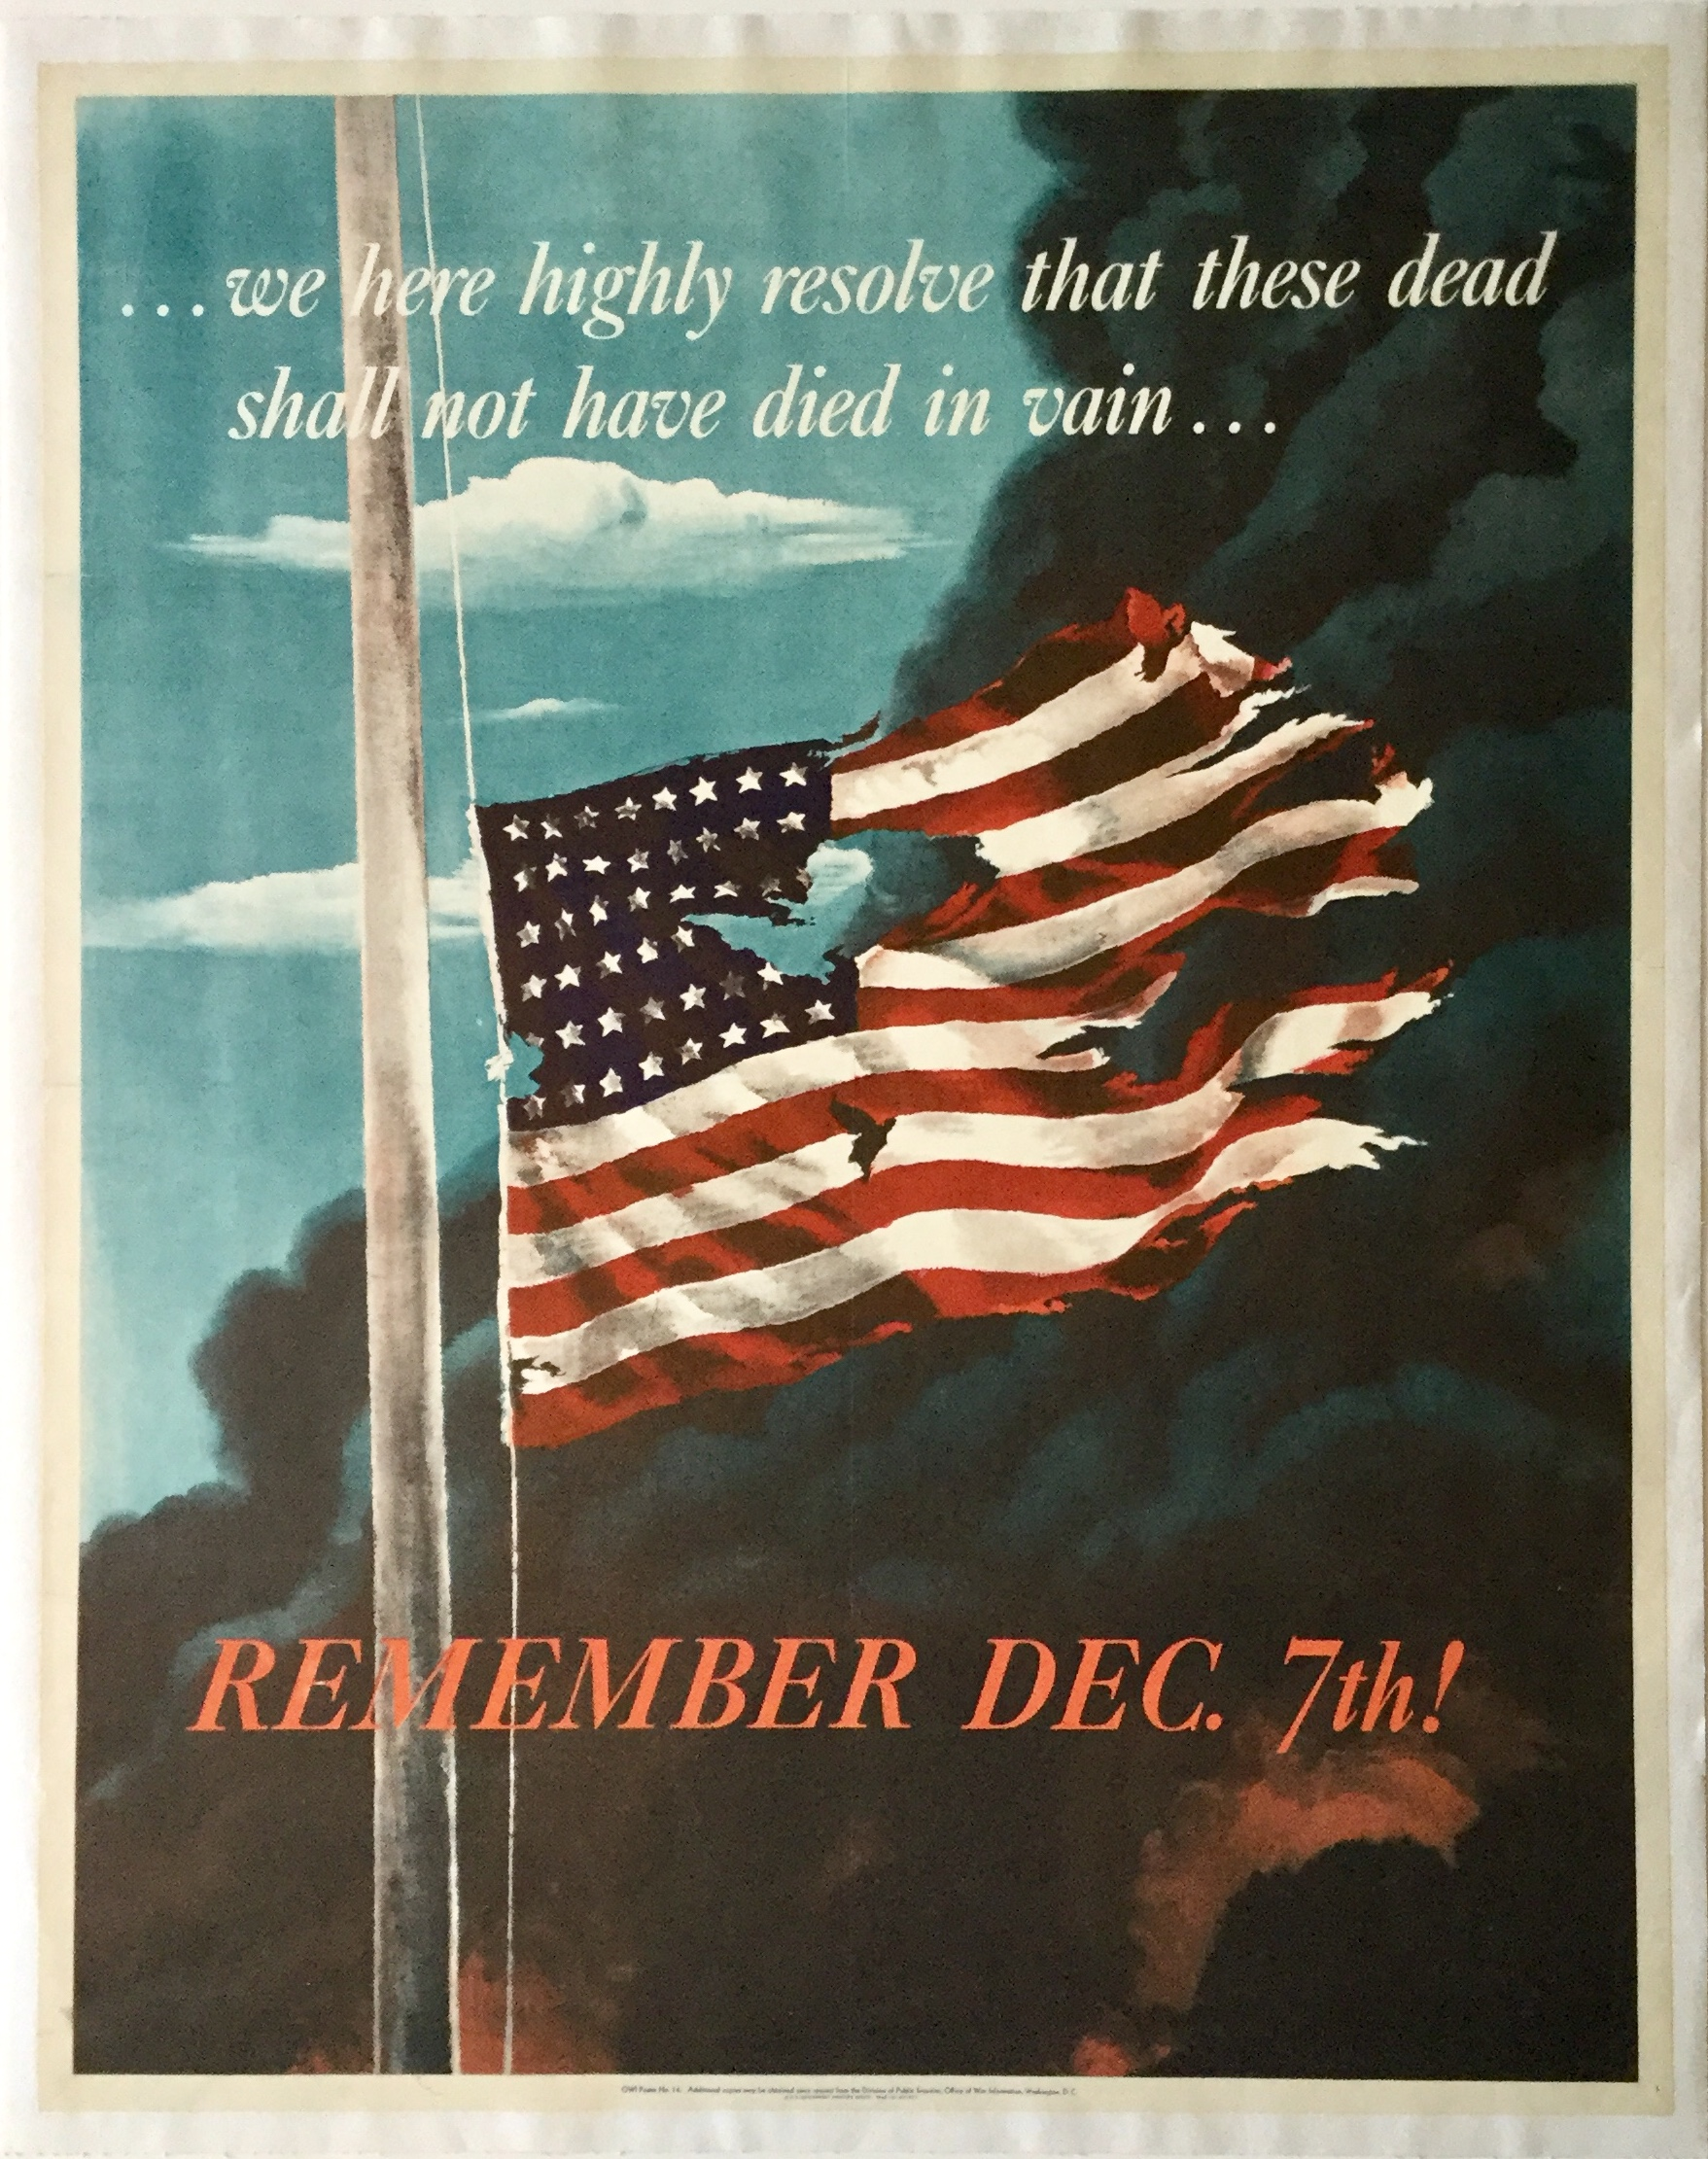 B2860 REMEMBER DEC. 7TH! ...WE HERE HIGHLY RESOLVE THAT THESE DEAD SHALL